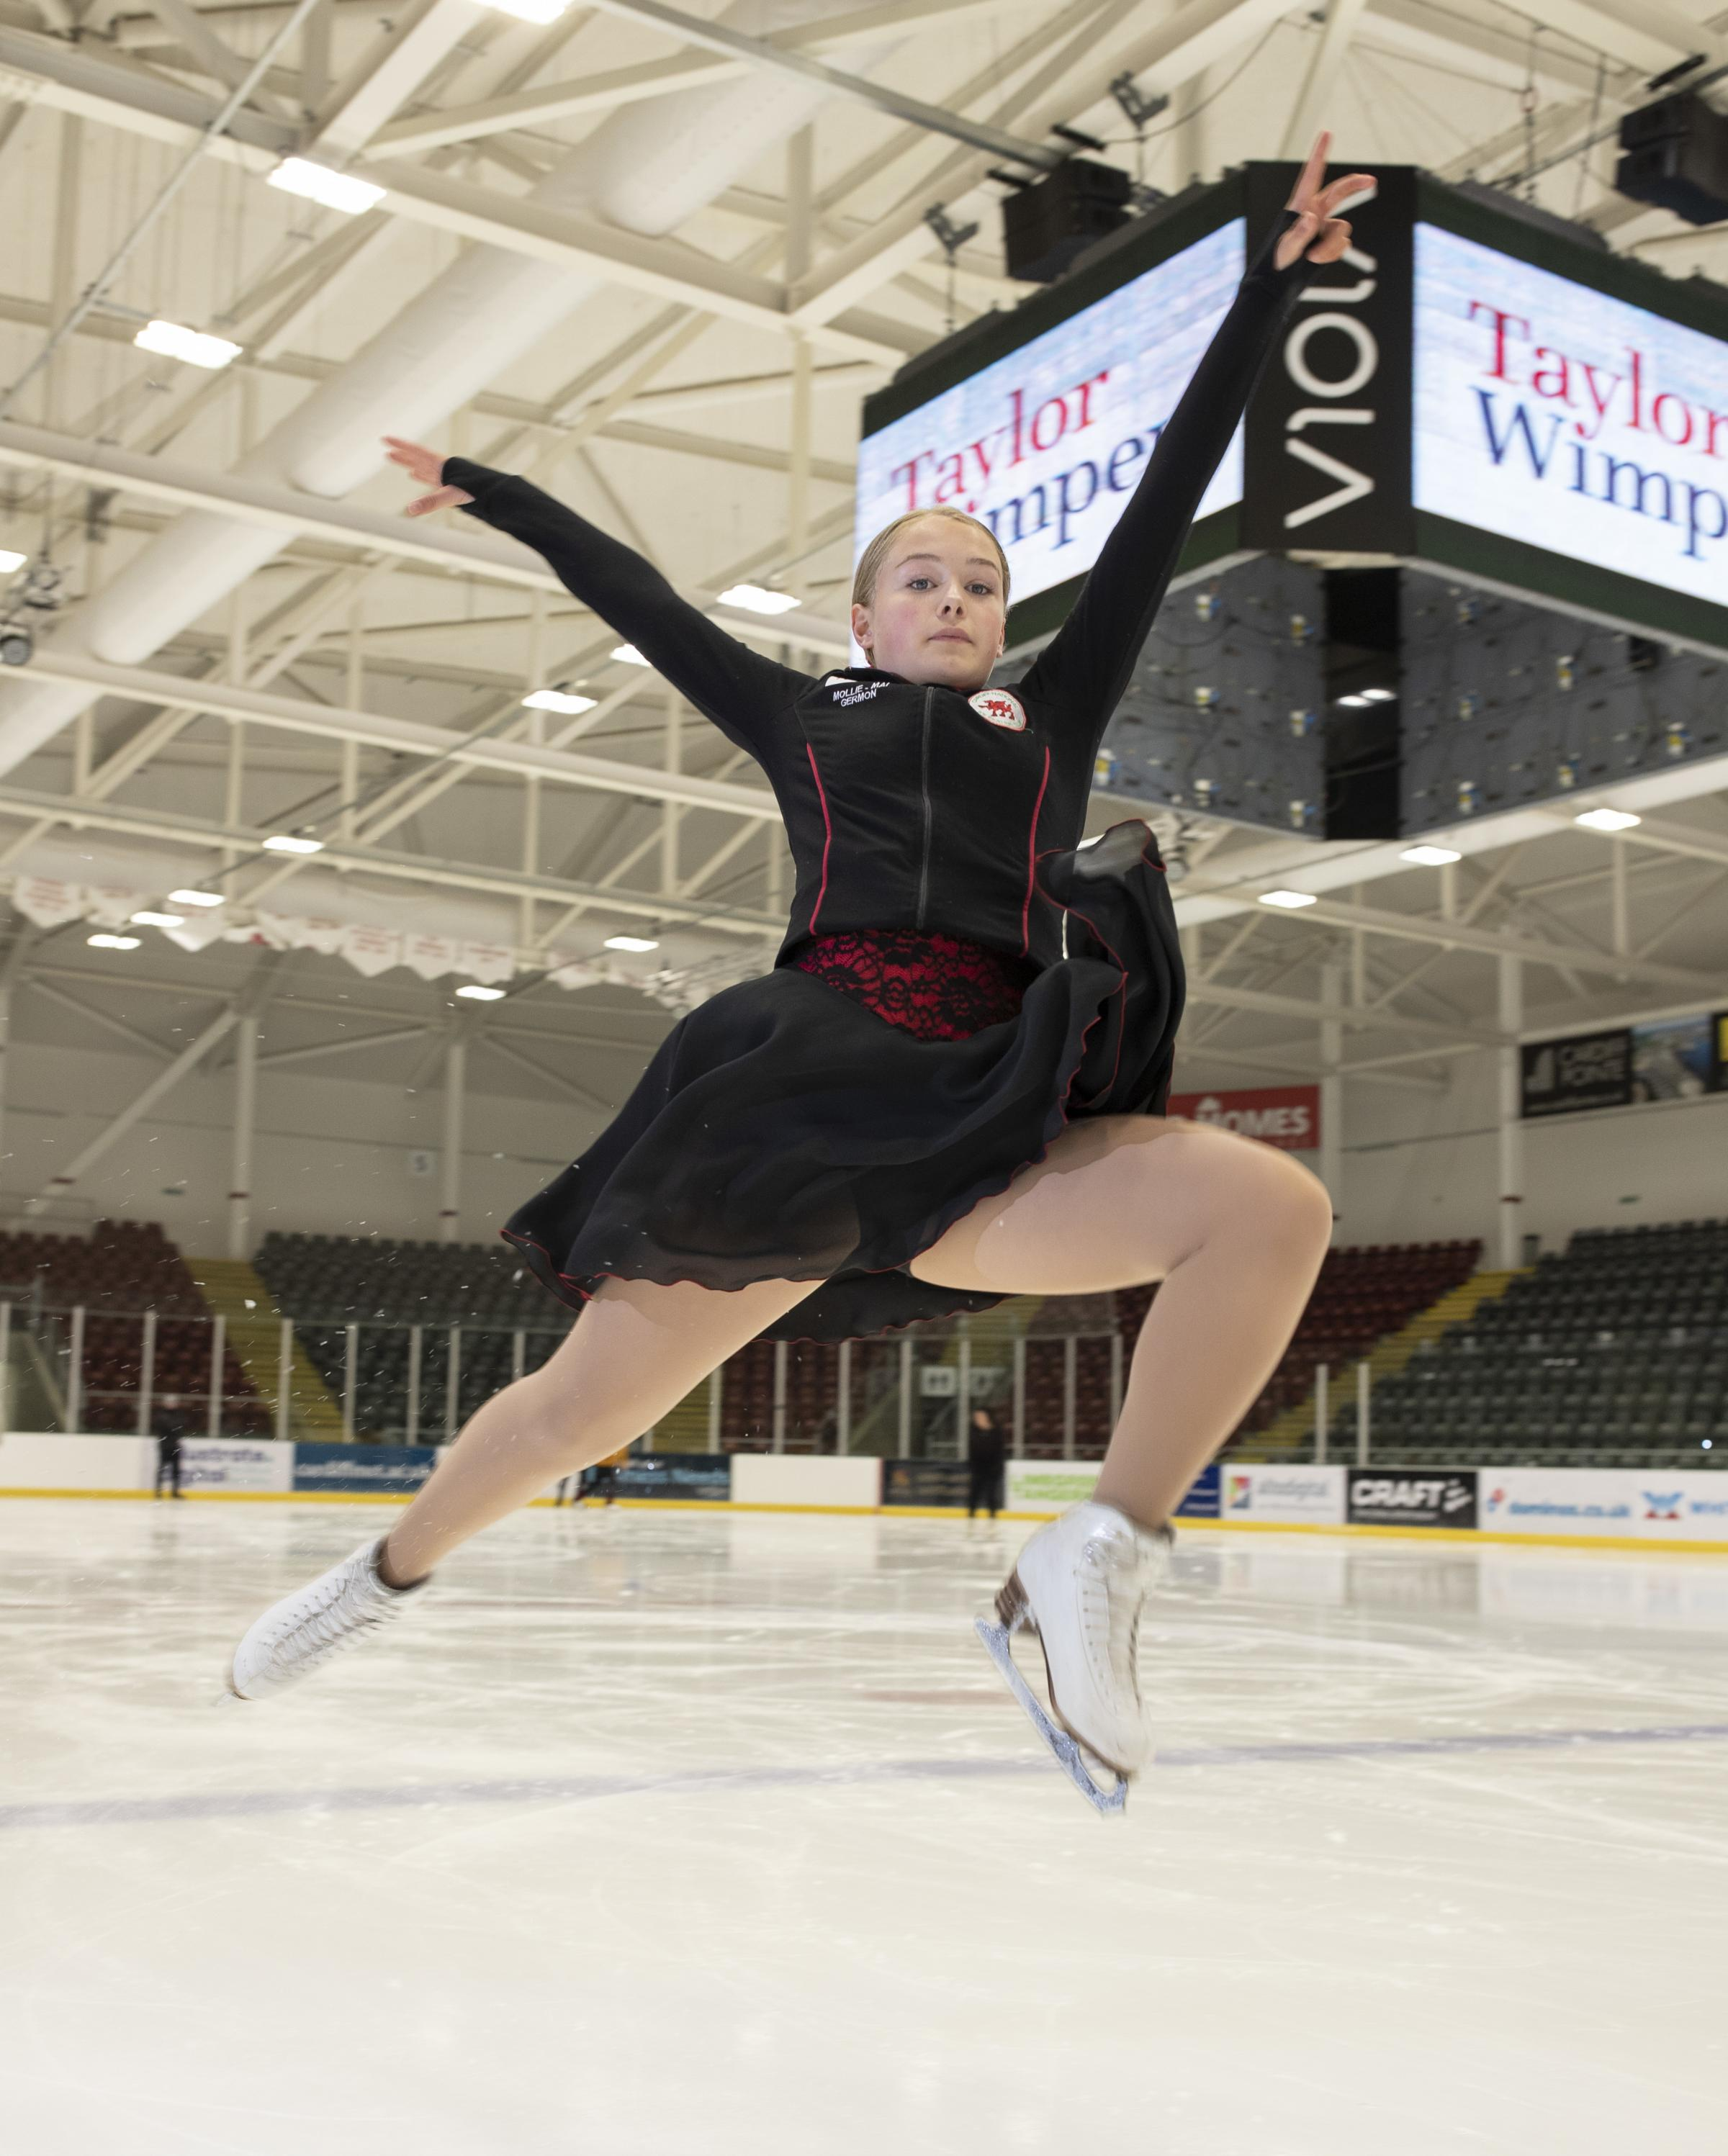 Vale ice skater Mollie Mai Germon glides ahead with sponsors boost